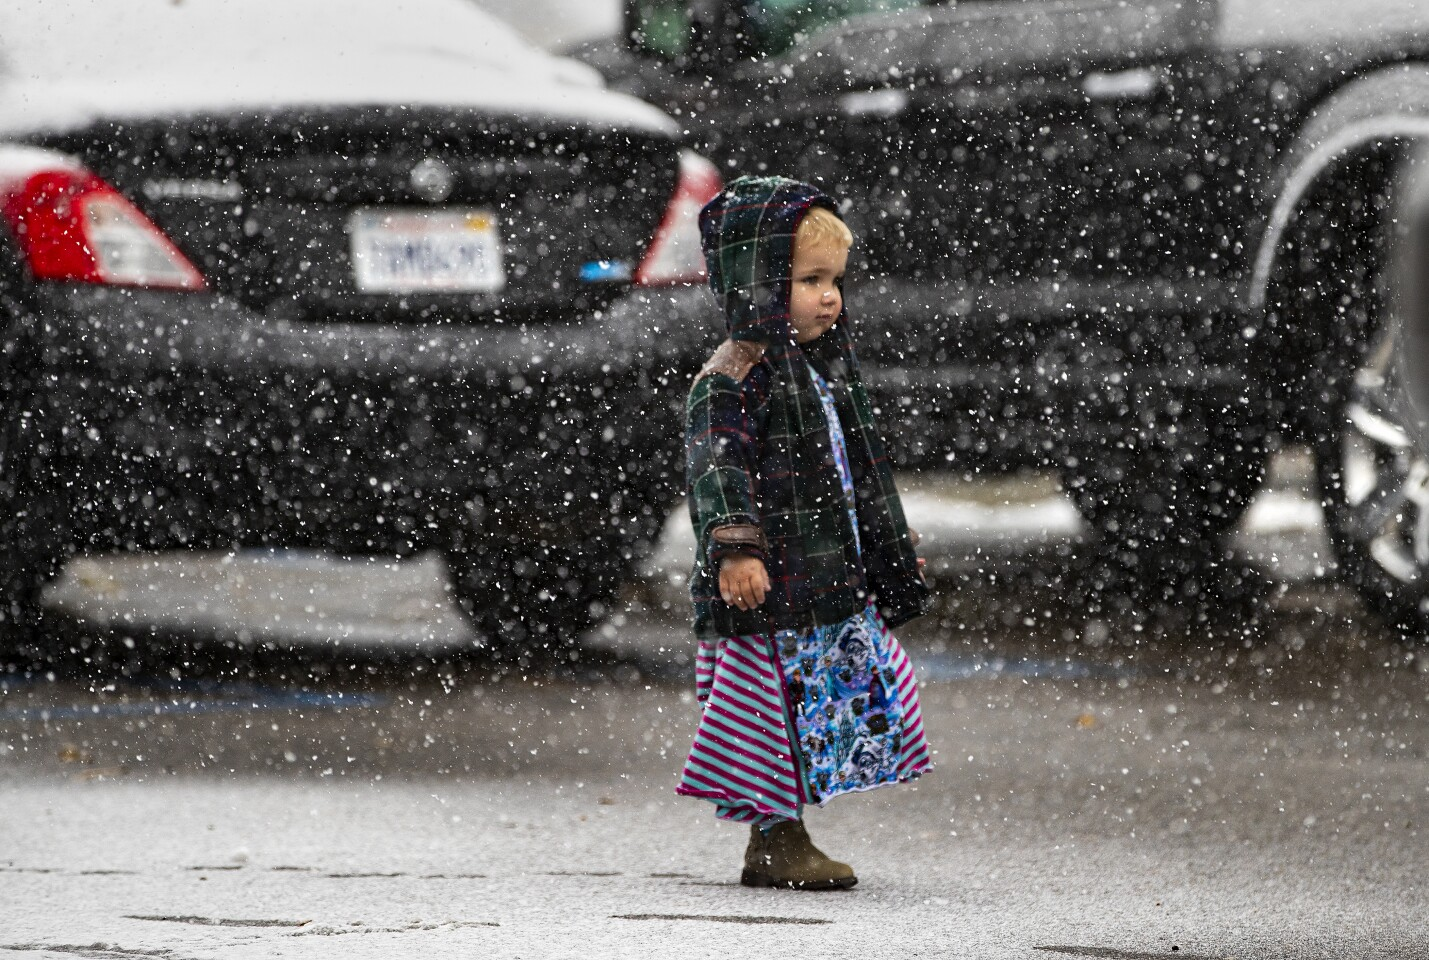 First storm of the season rolls through Southern California